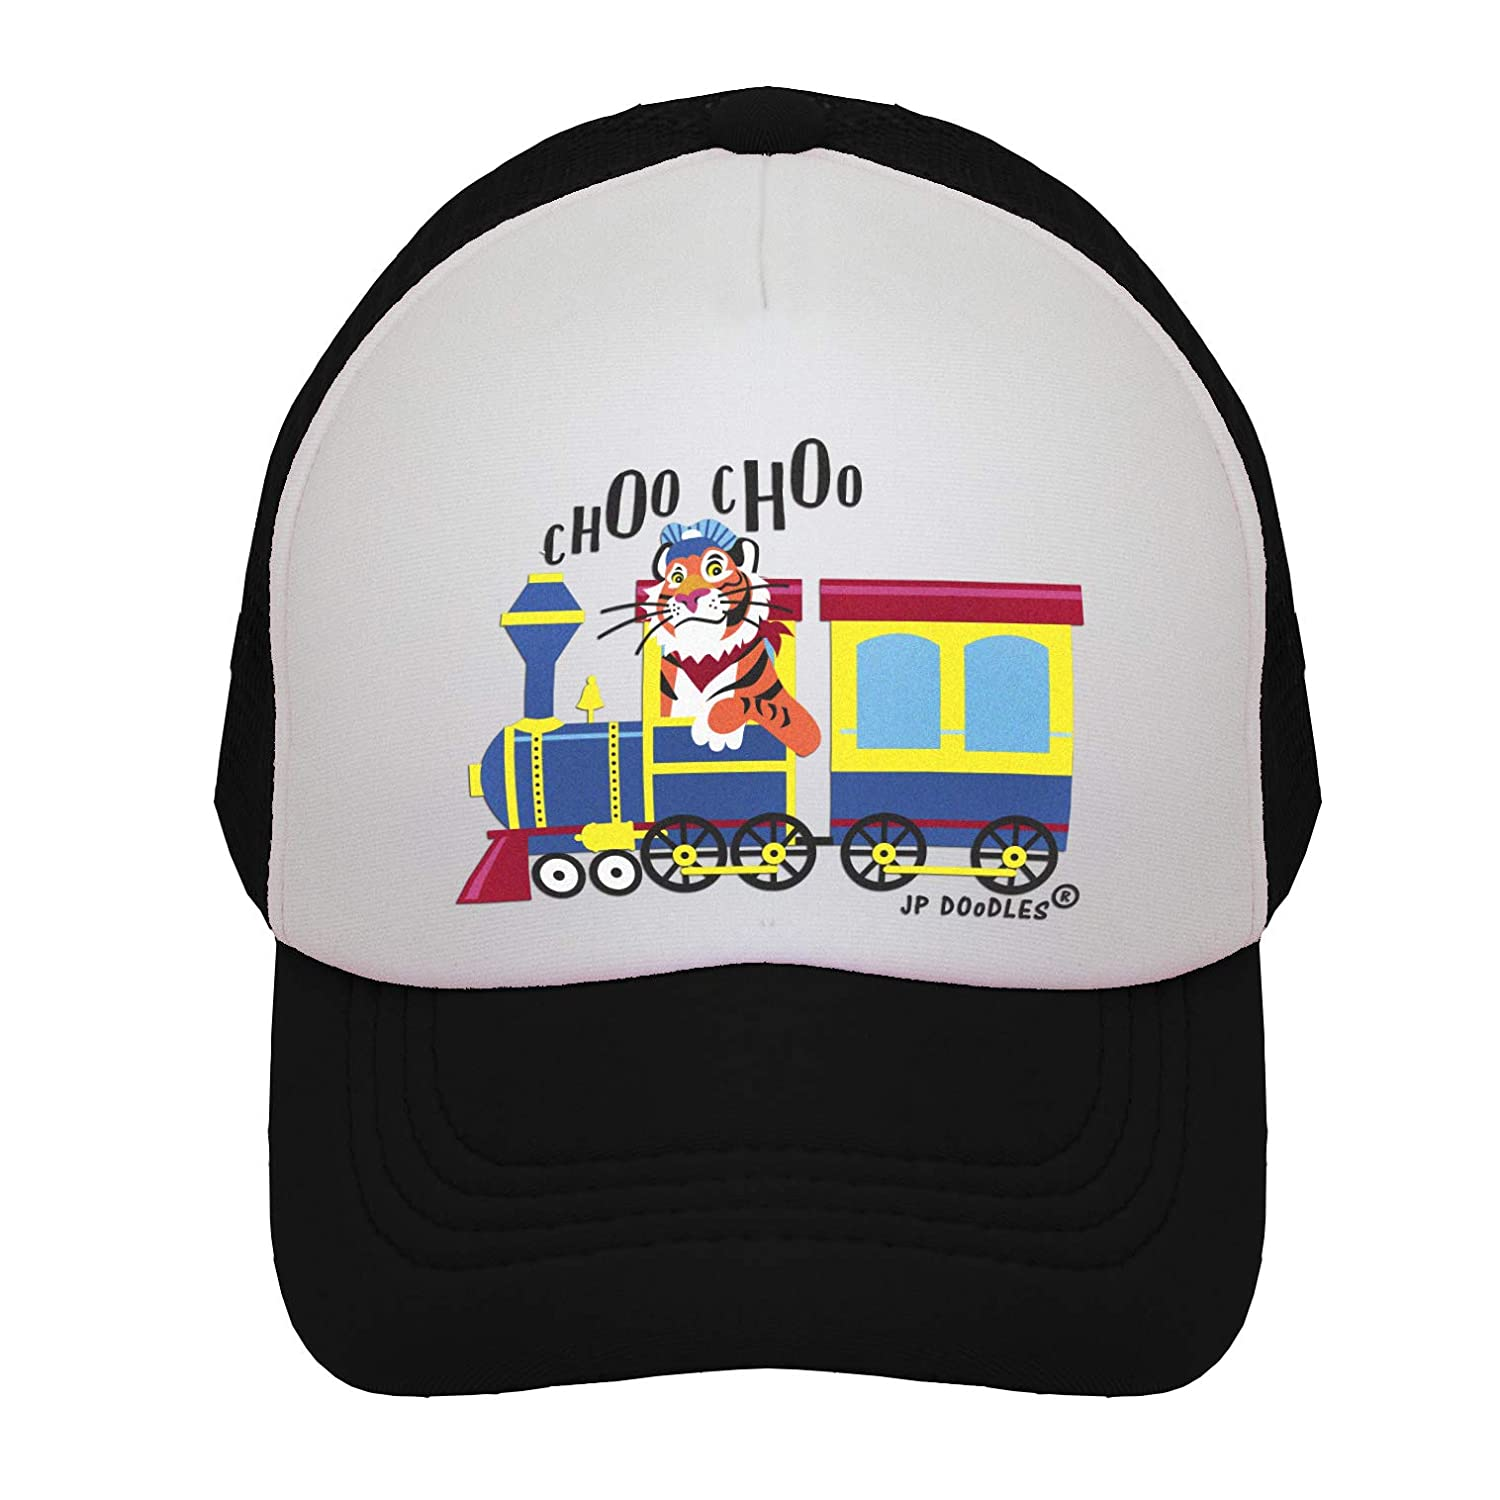 b7d56ffb355 Amazon.com  JP DOoDLES Choo Choo Train on Kids Trucker Hat. Kids Baseball  Cap is Available in Baby